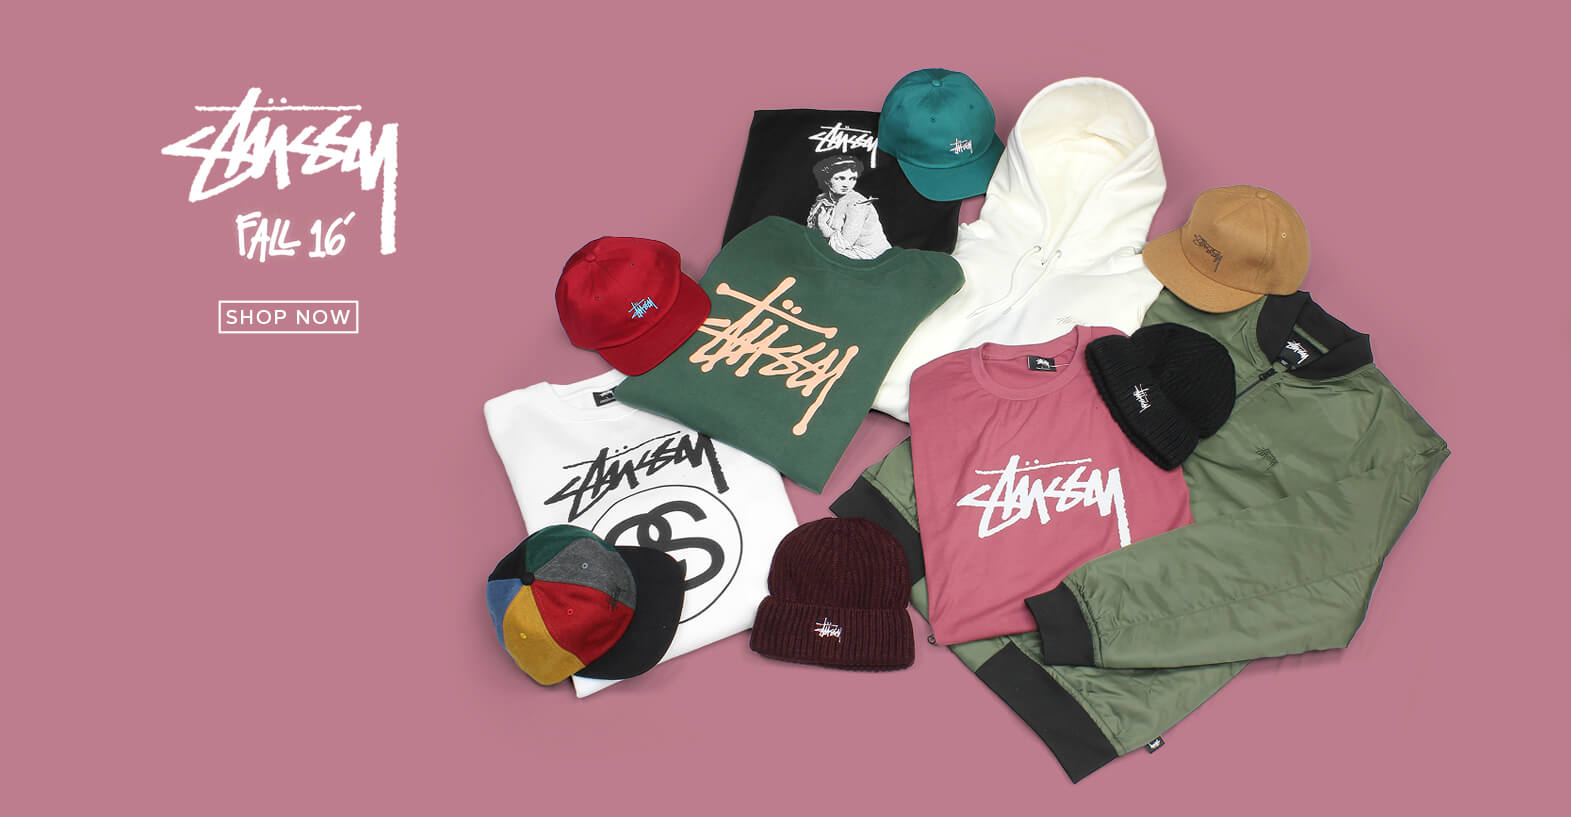 stussy fall 16 delivery 2